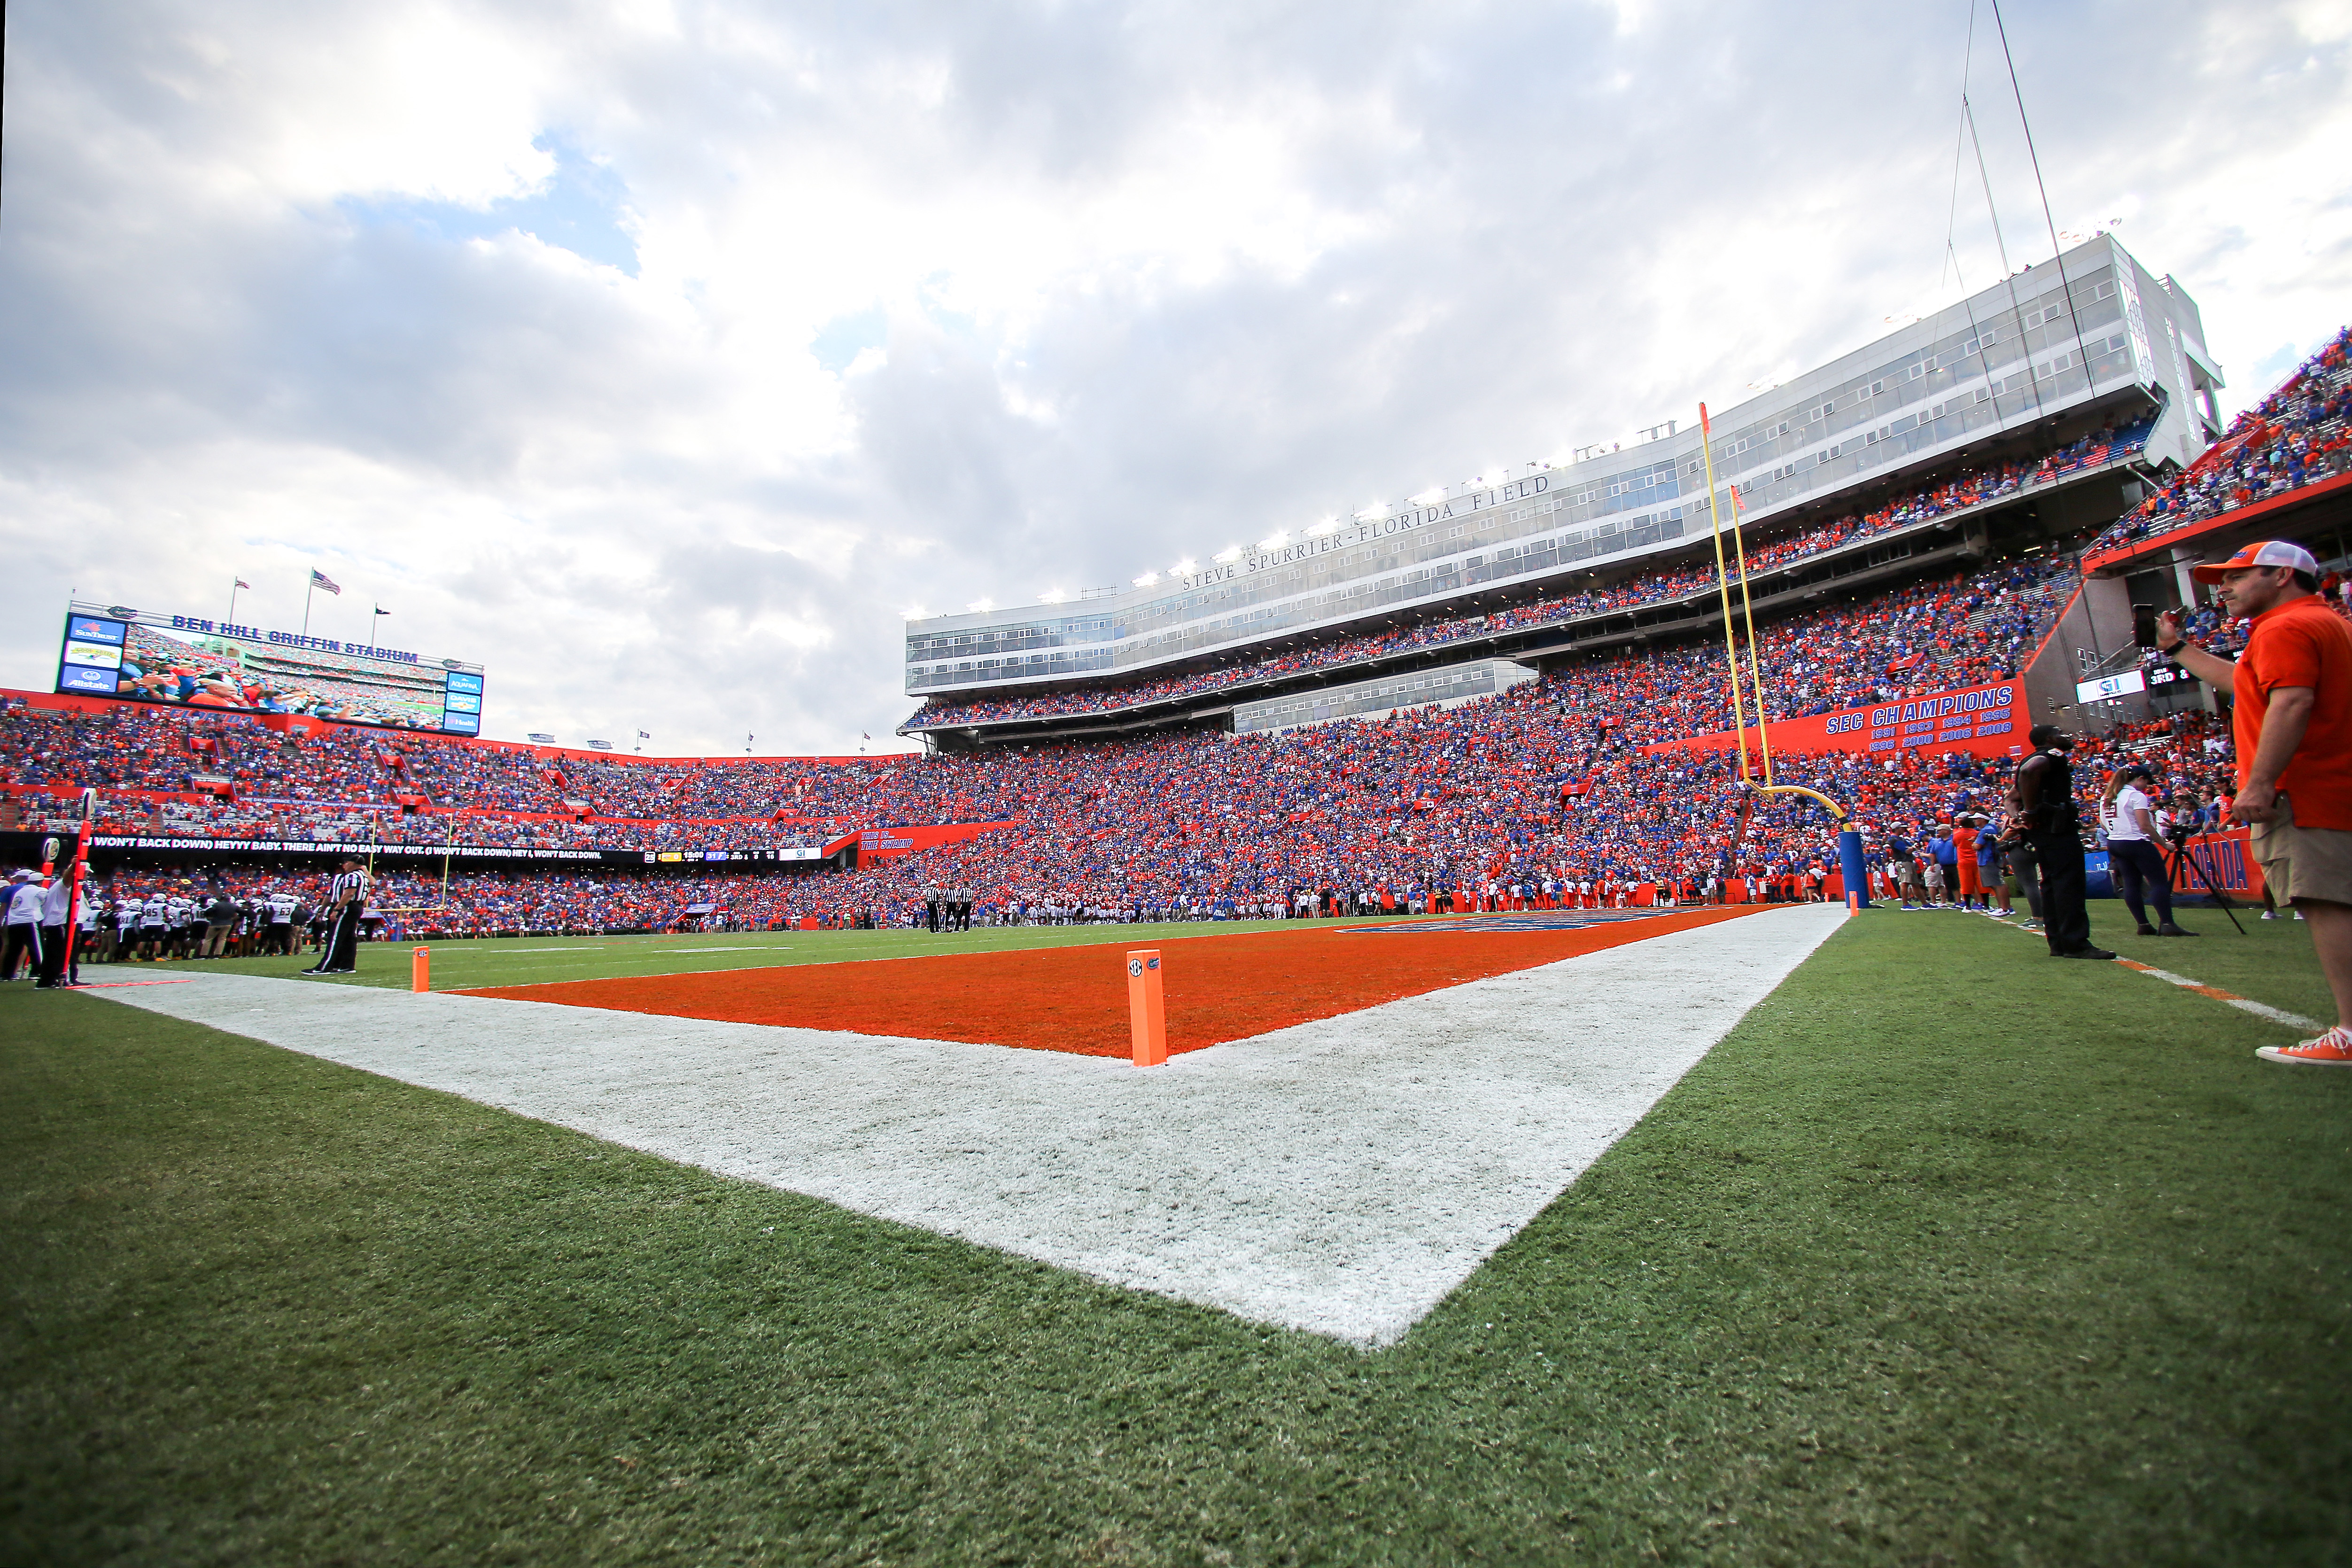 A General View of Ben Hill Griffin Stadium during the fourth quarter of the Towson Tigers Versus the Florida Gators game on September 28, 2019 in Gainesville, Florida.